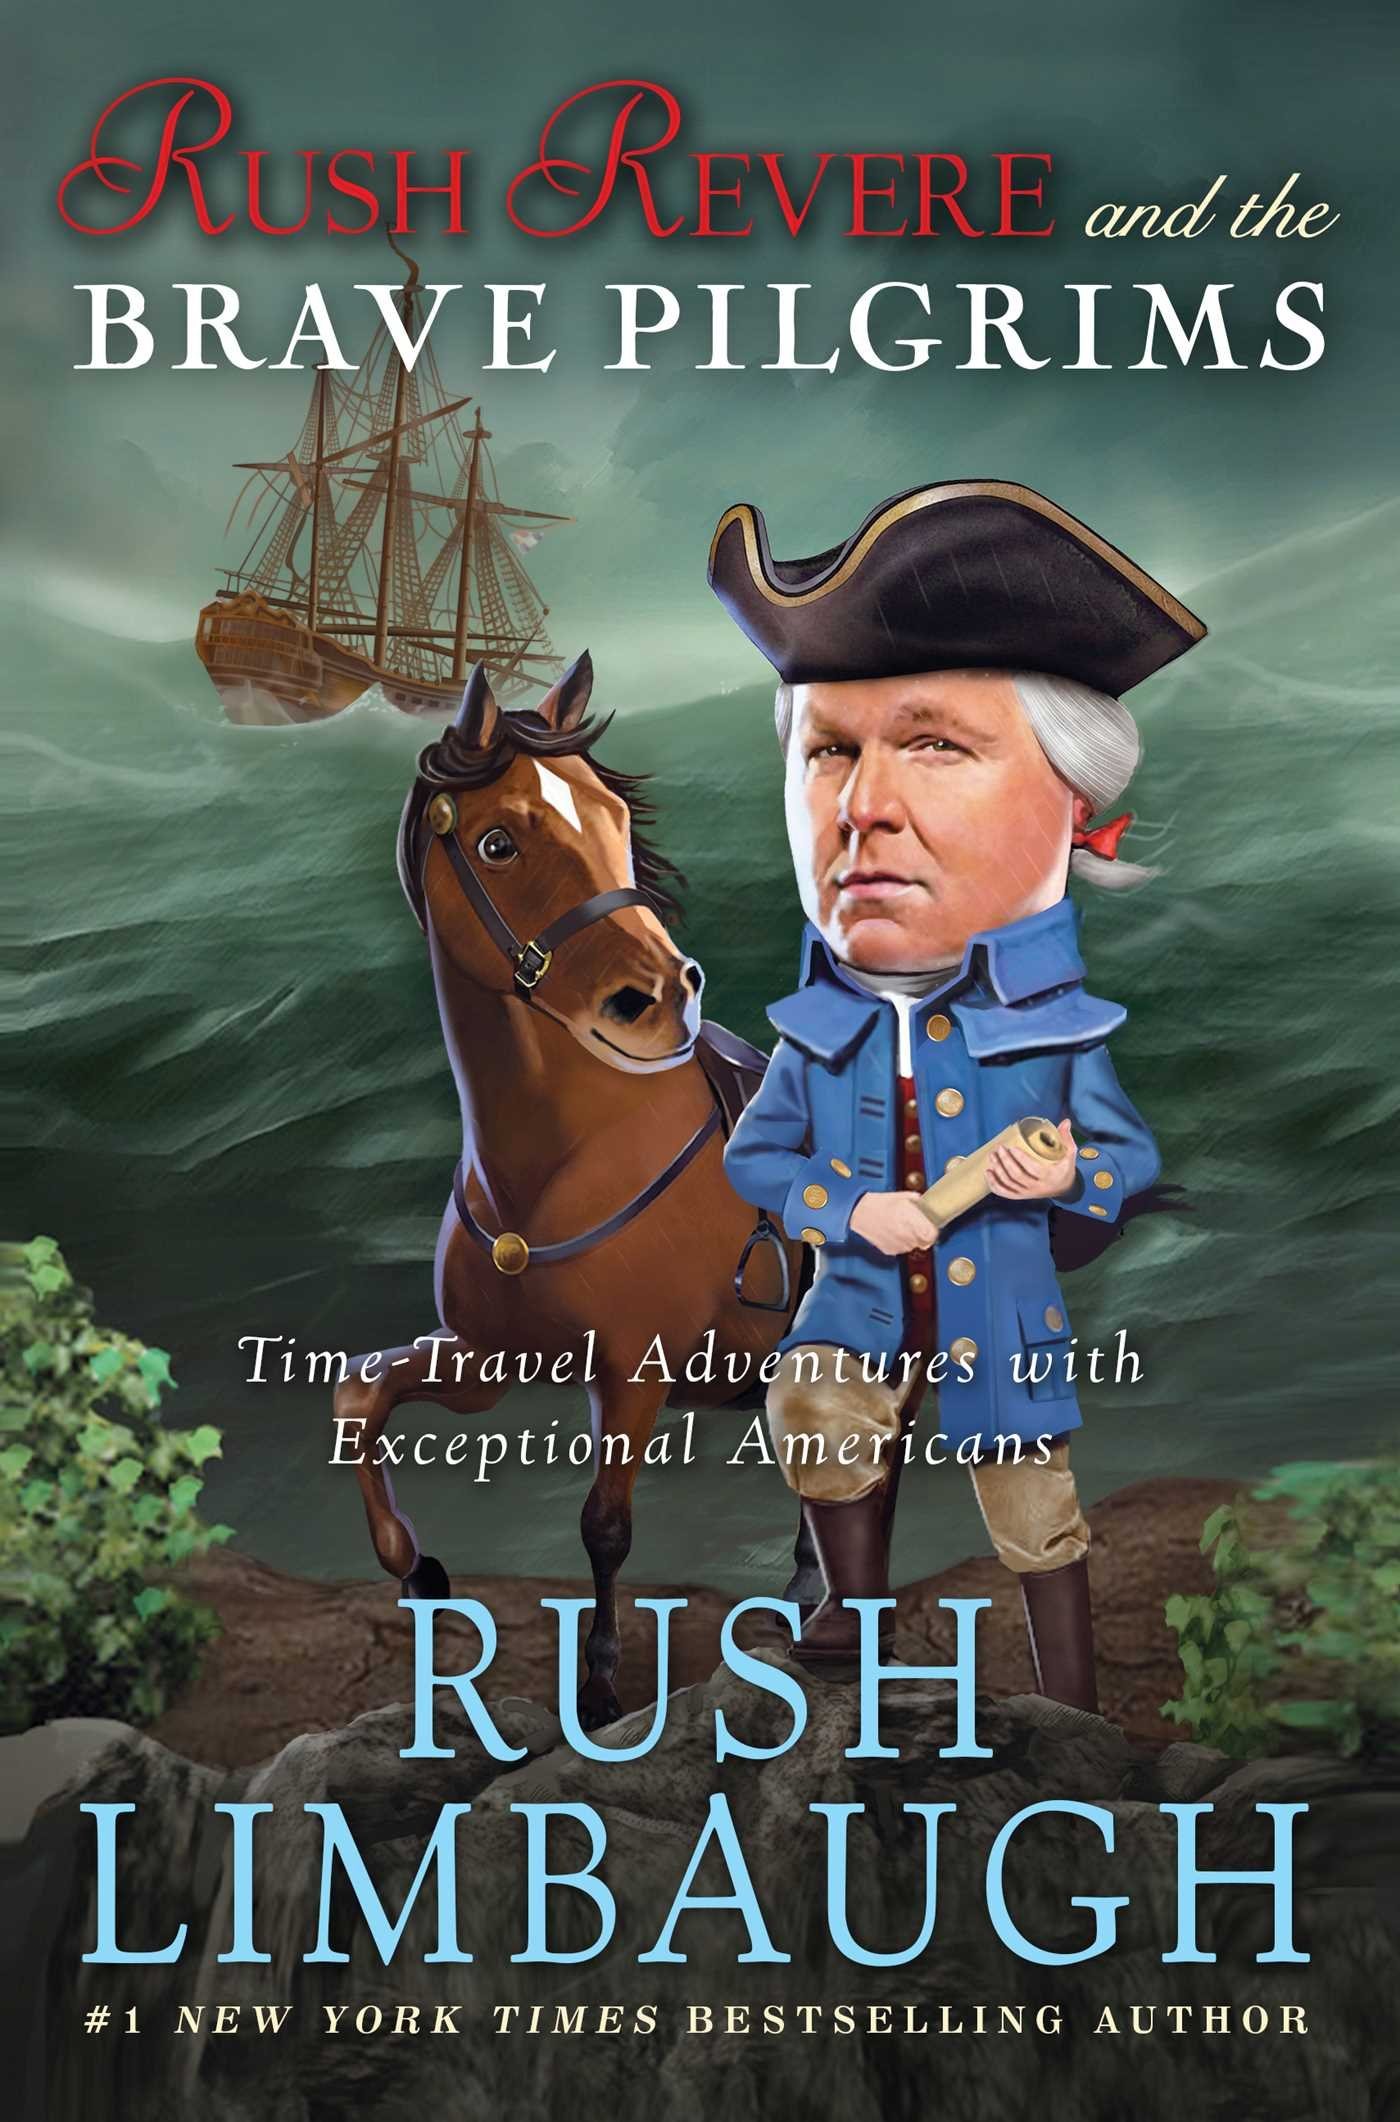 The Further Adventures of Rush Revere: Rush Revere and the Brave Pilgrims / Rush Revere and the First Patriots / Rush Revere and the American Revolution / Rush Revere and the Star-Spangled Banner by Threshold Editions (Image #3)